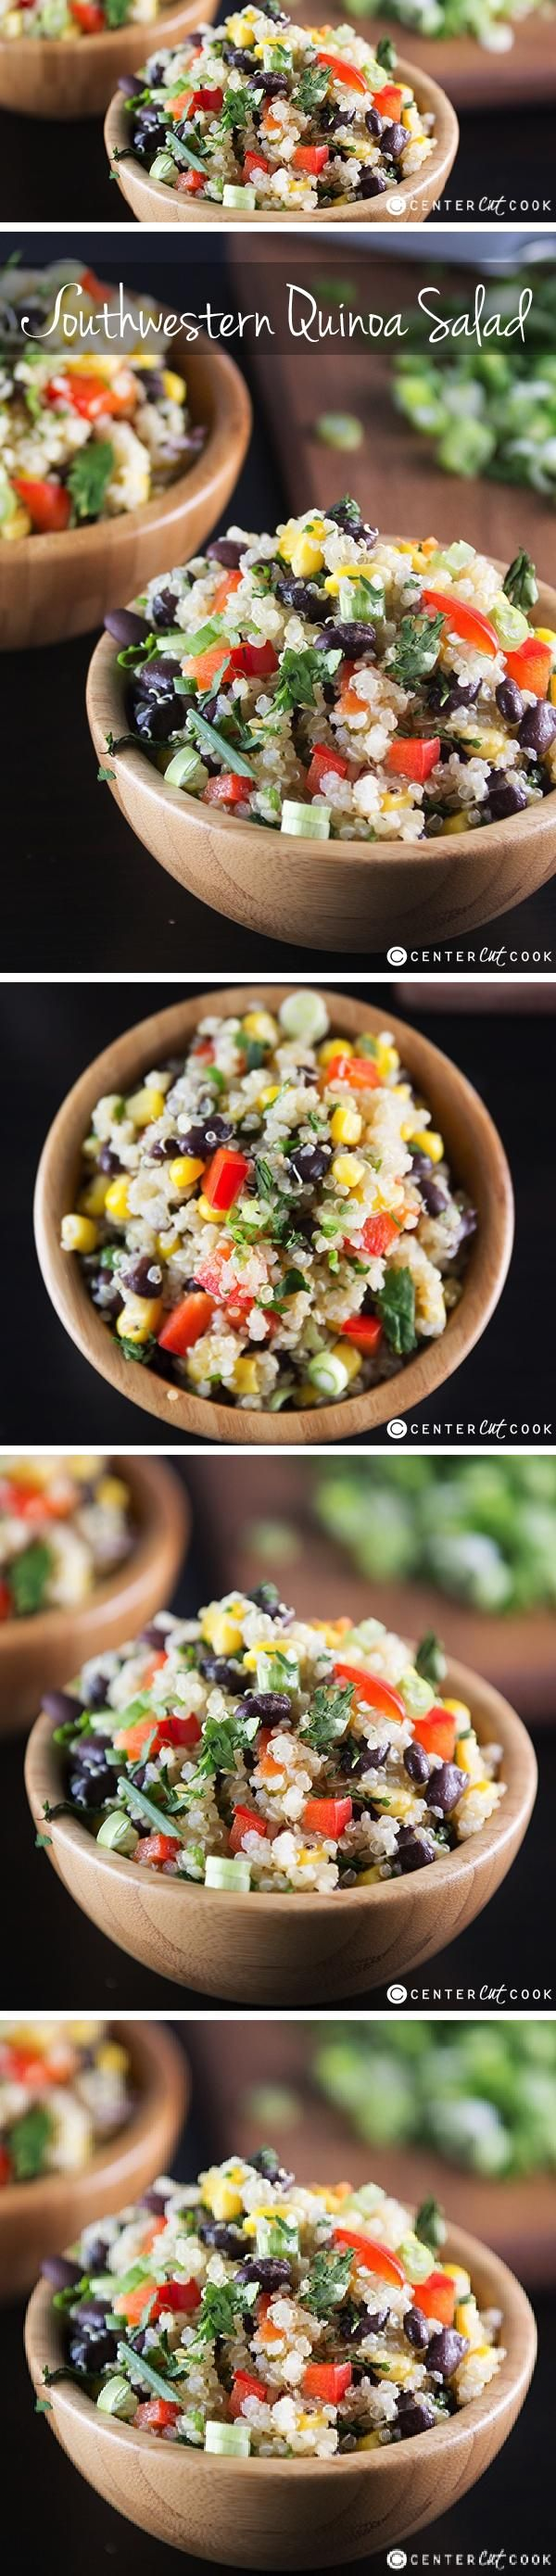 SOUTHWEST QUINOA SALAD similar to the Whole Foods version with a lime dressing! Clean eating never tasted so good!